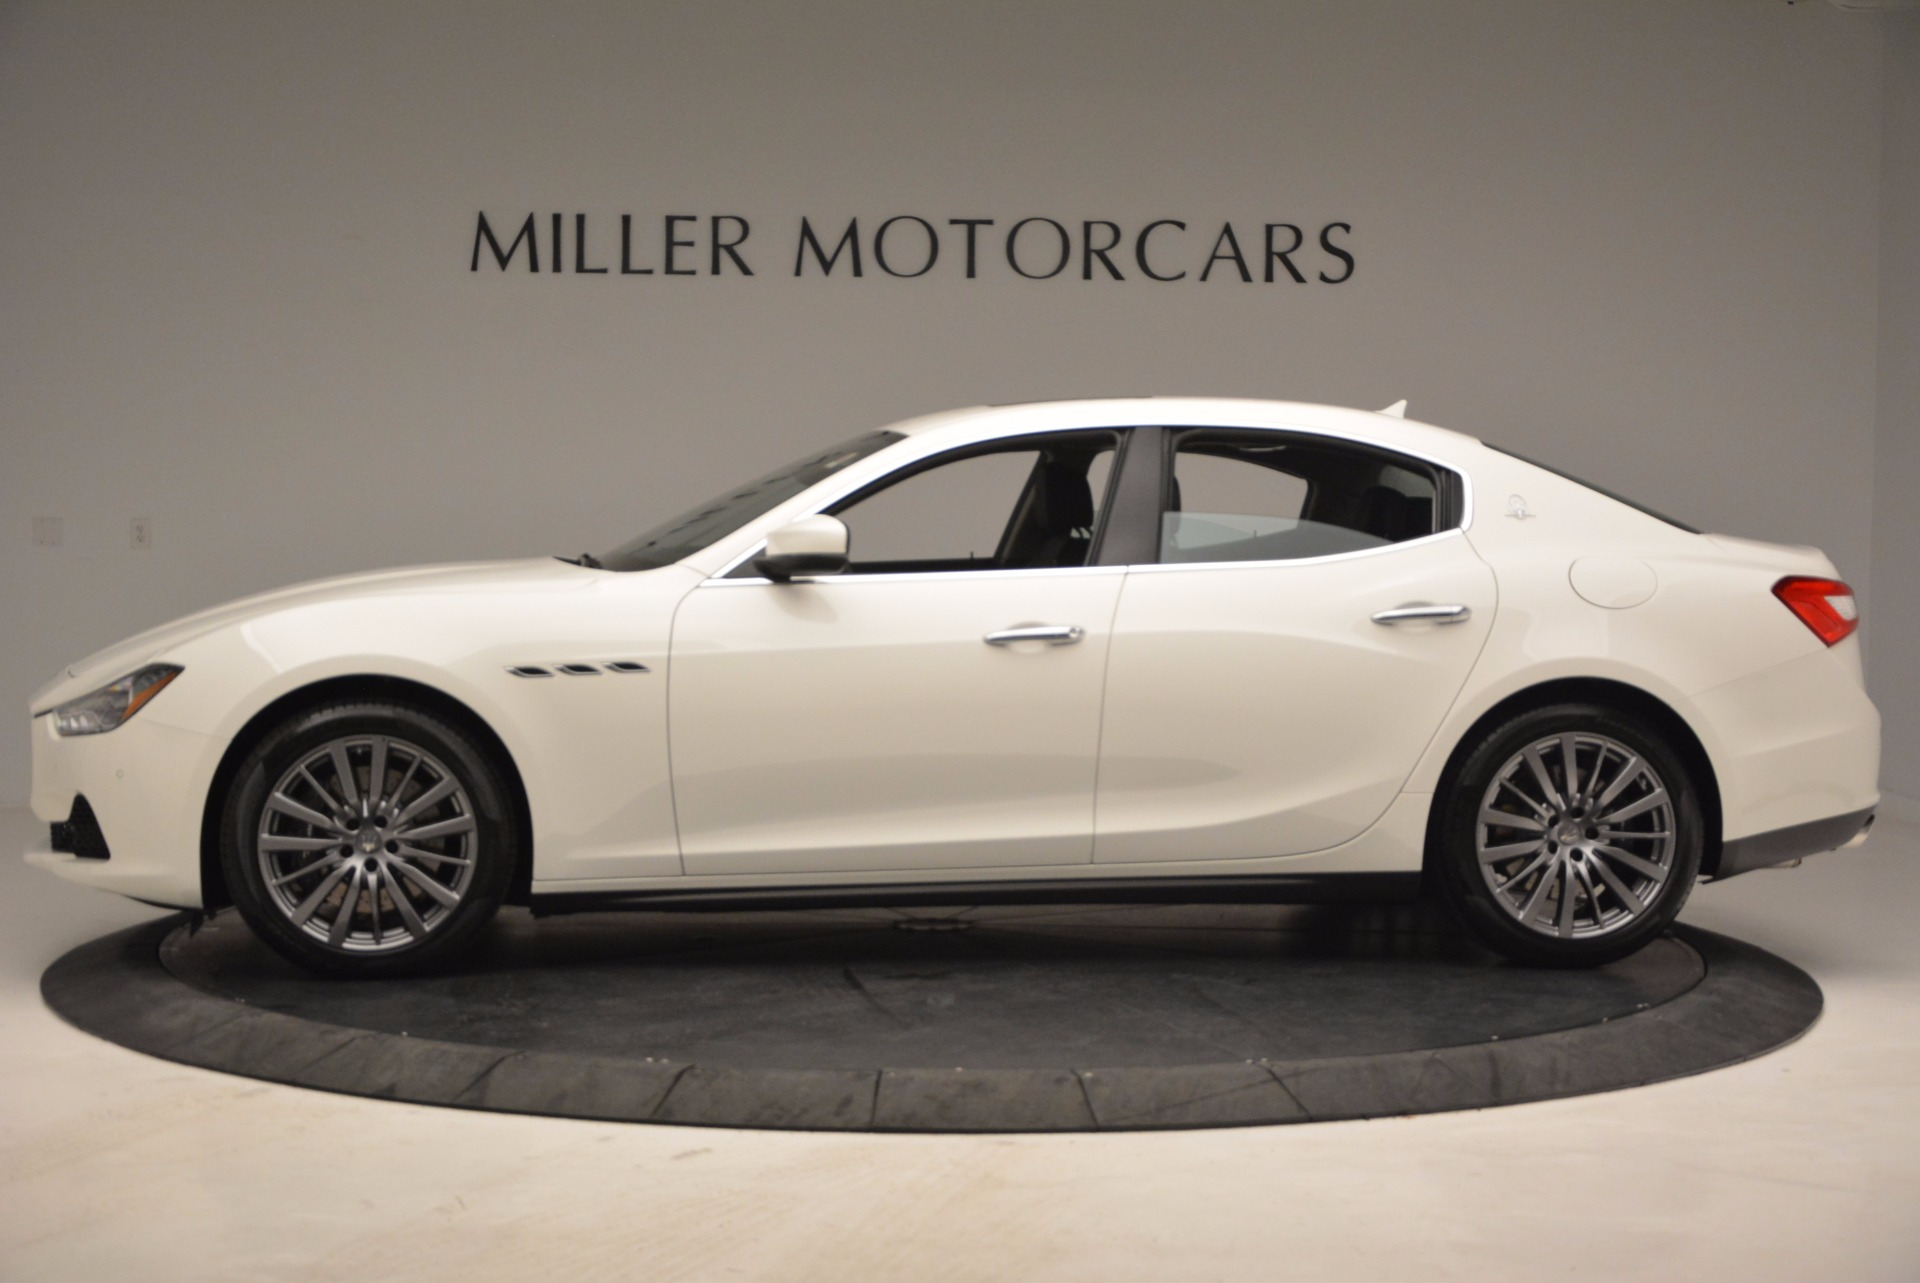 New 2017 Maserati Ghibli S Q4 EX-Loaner For Sale In Greenwich, CT 1031_p3